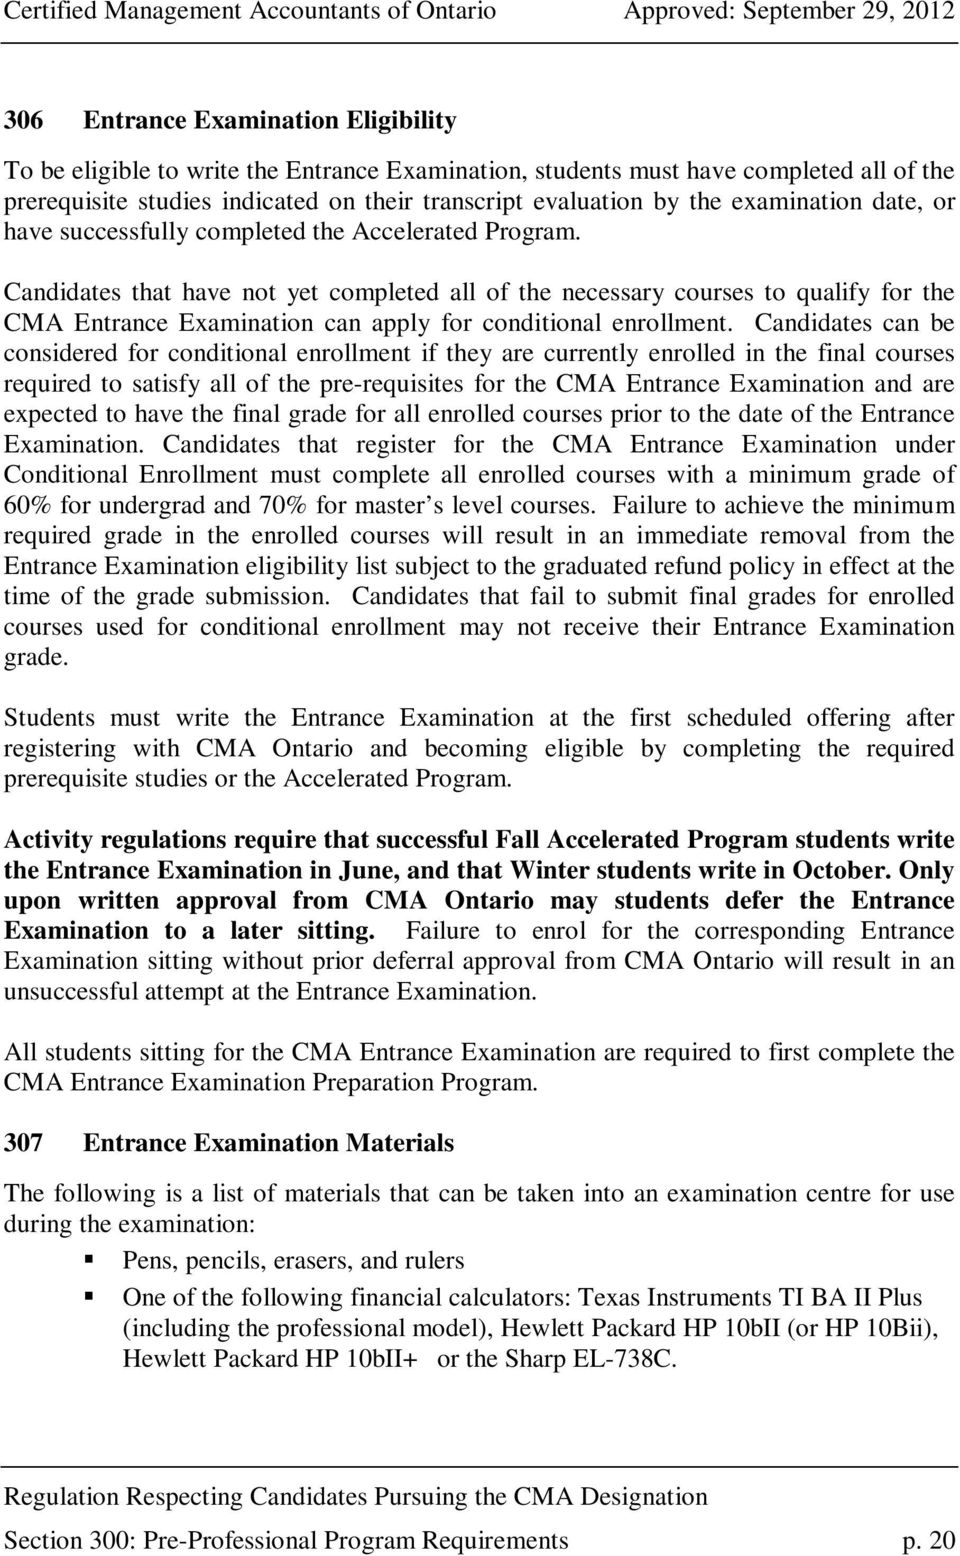 Candidates that have not yet completed all of the necessary courses to qualify for the CMA Entrance Examination can apply for conditional enrollment.